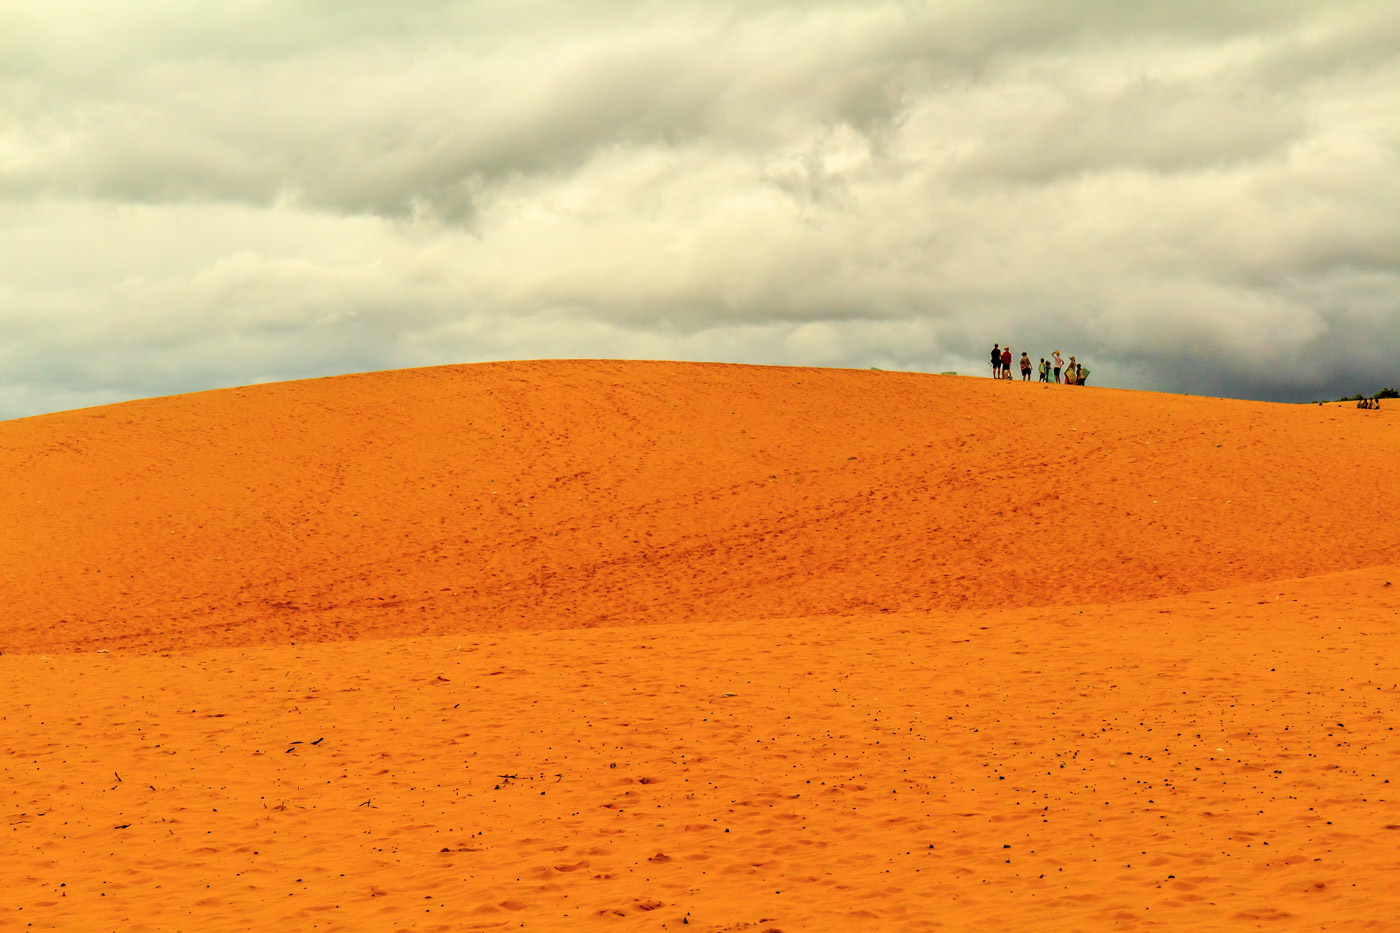 The red sand dunes.